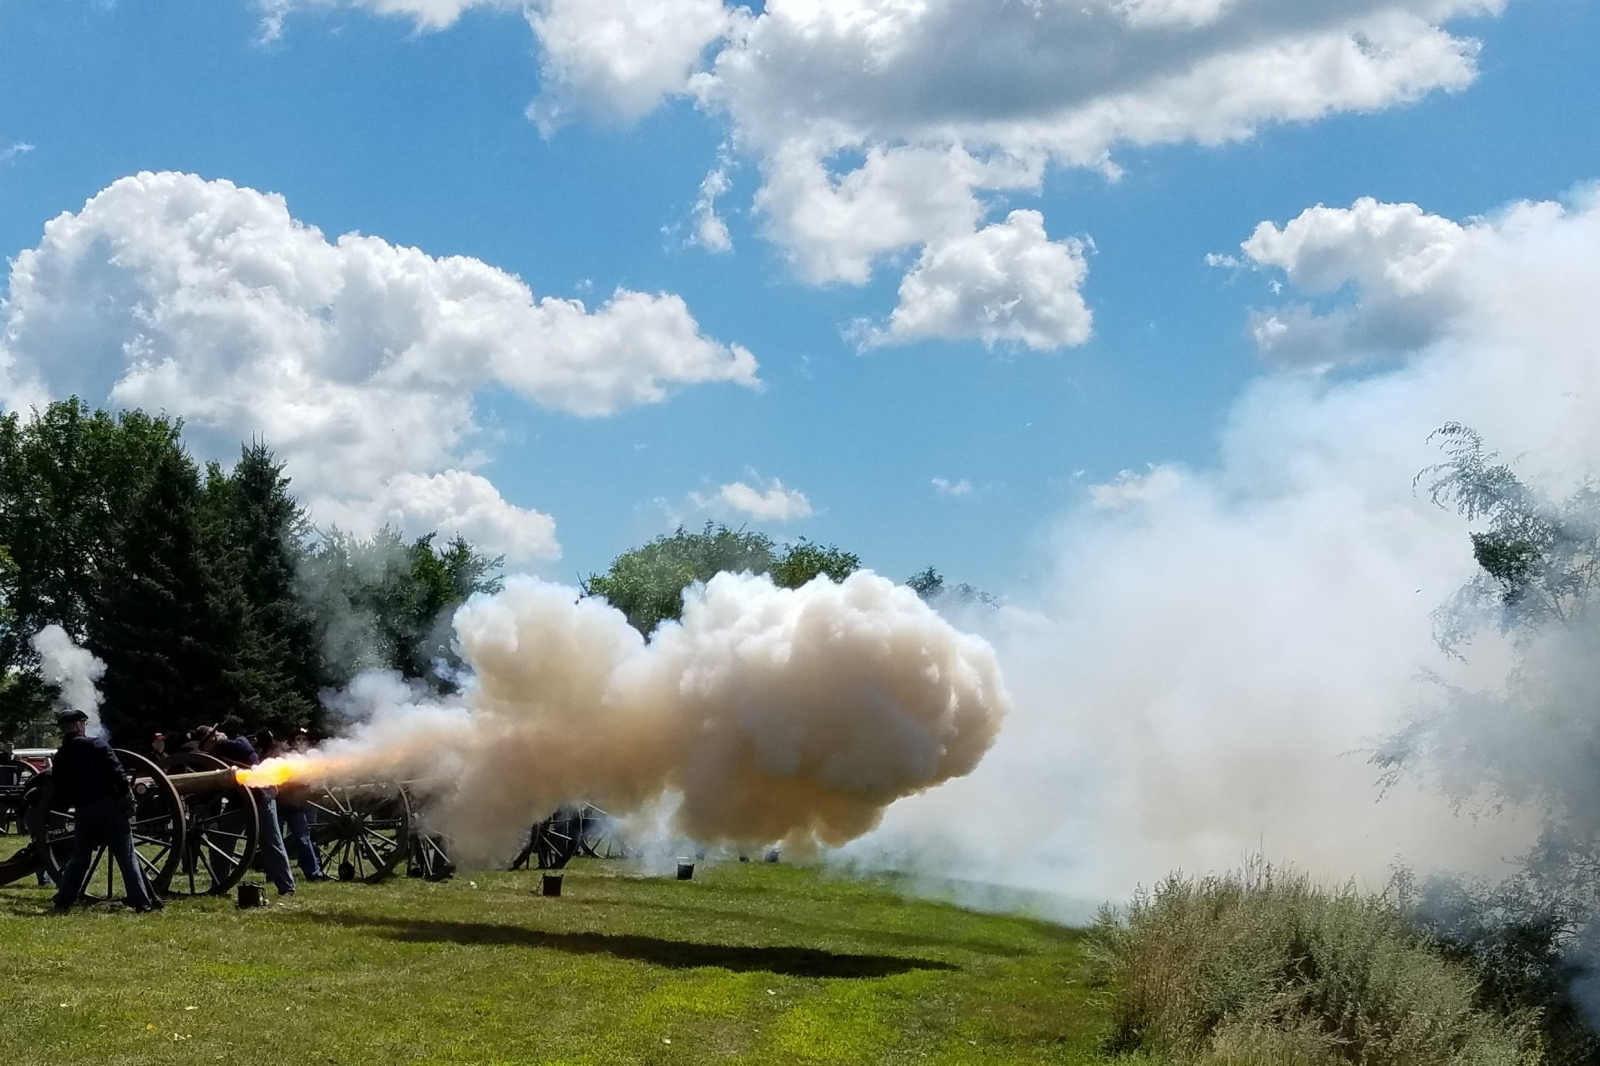 People firing a cannon at Pipestone Civil War Days.